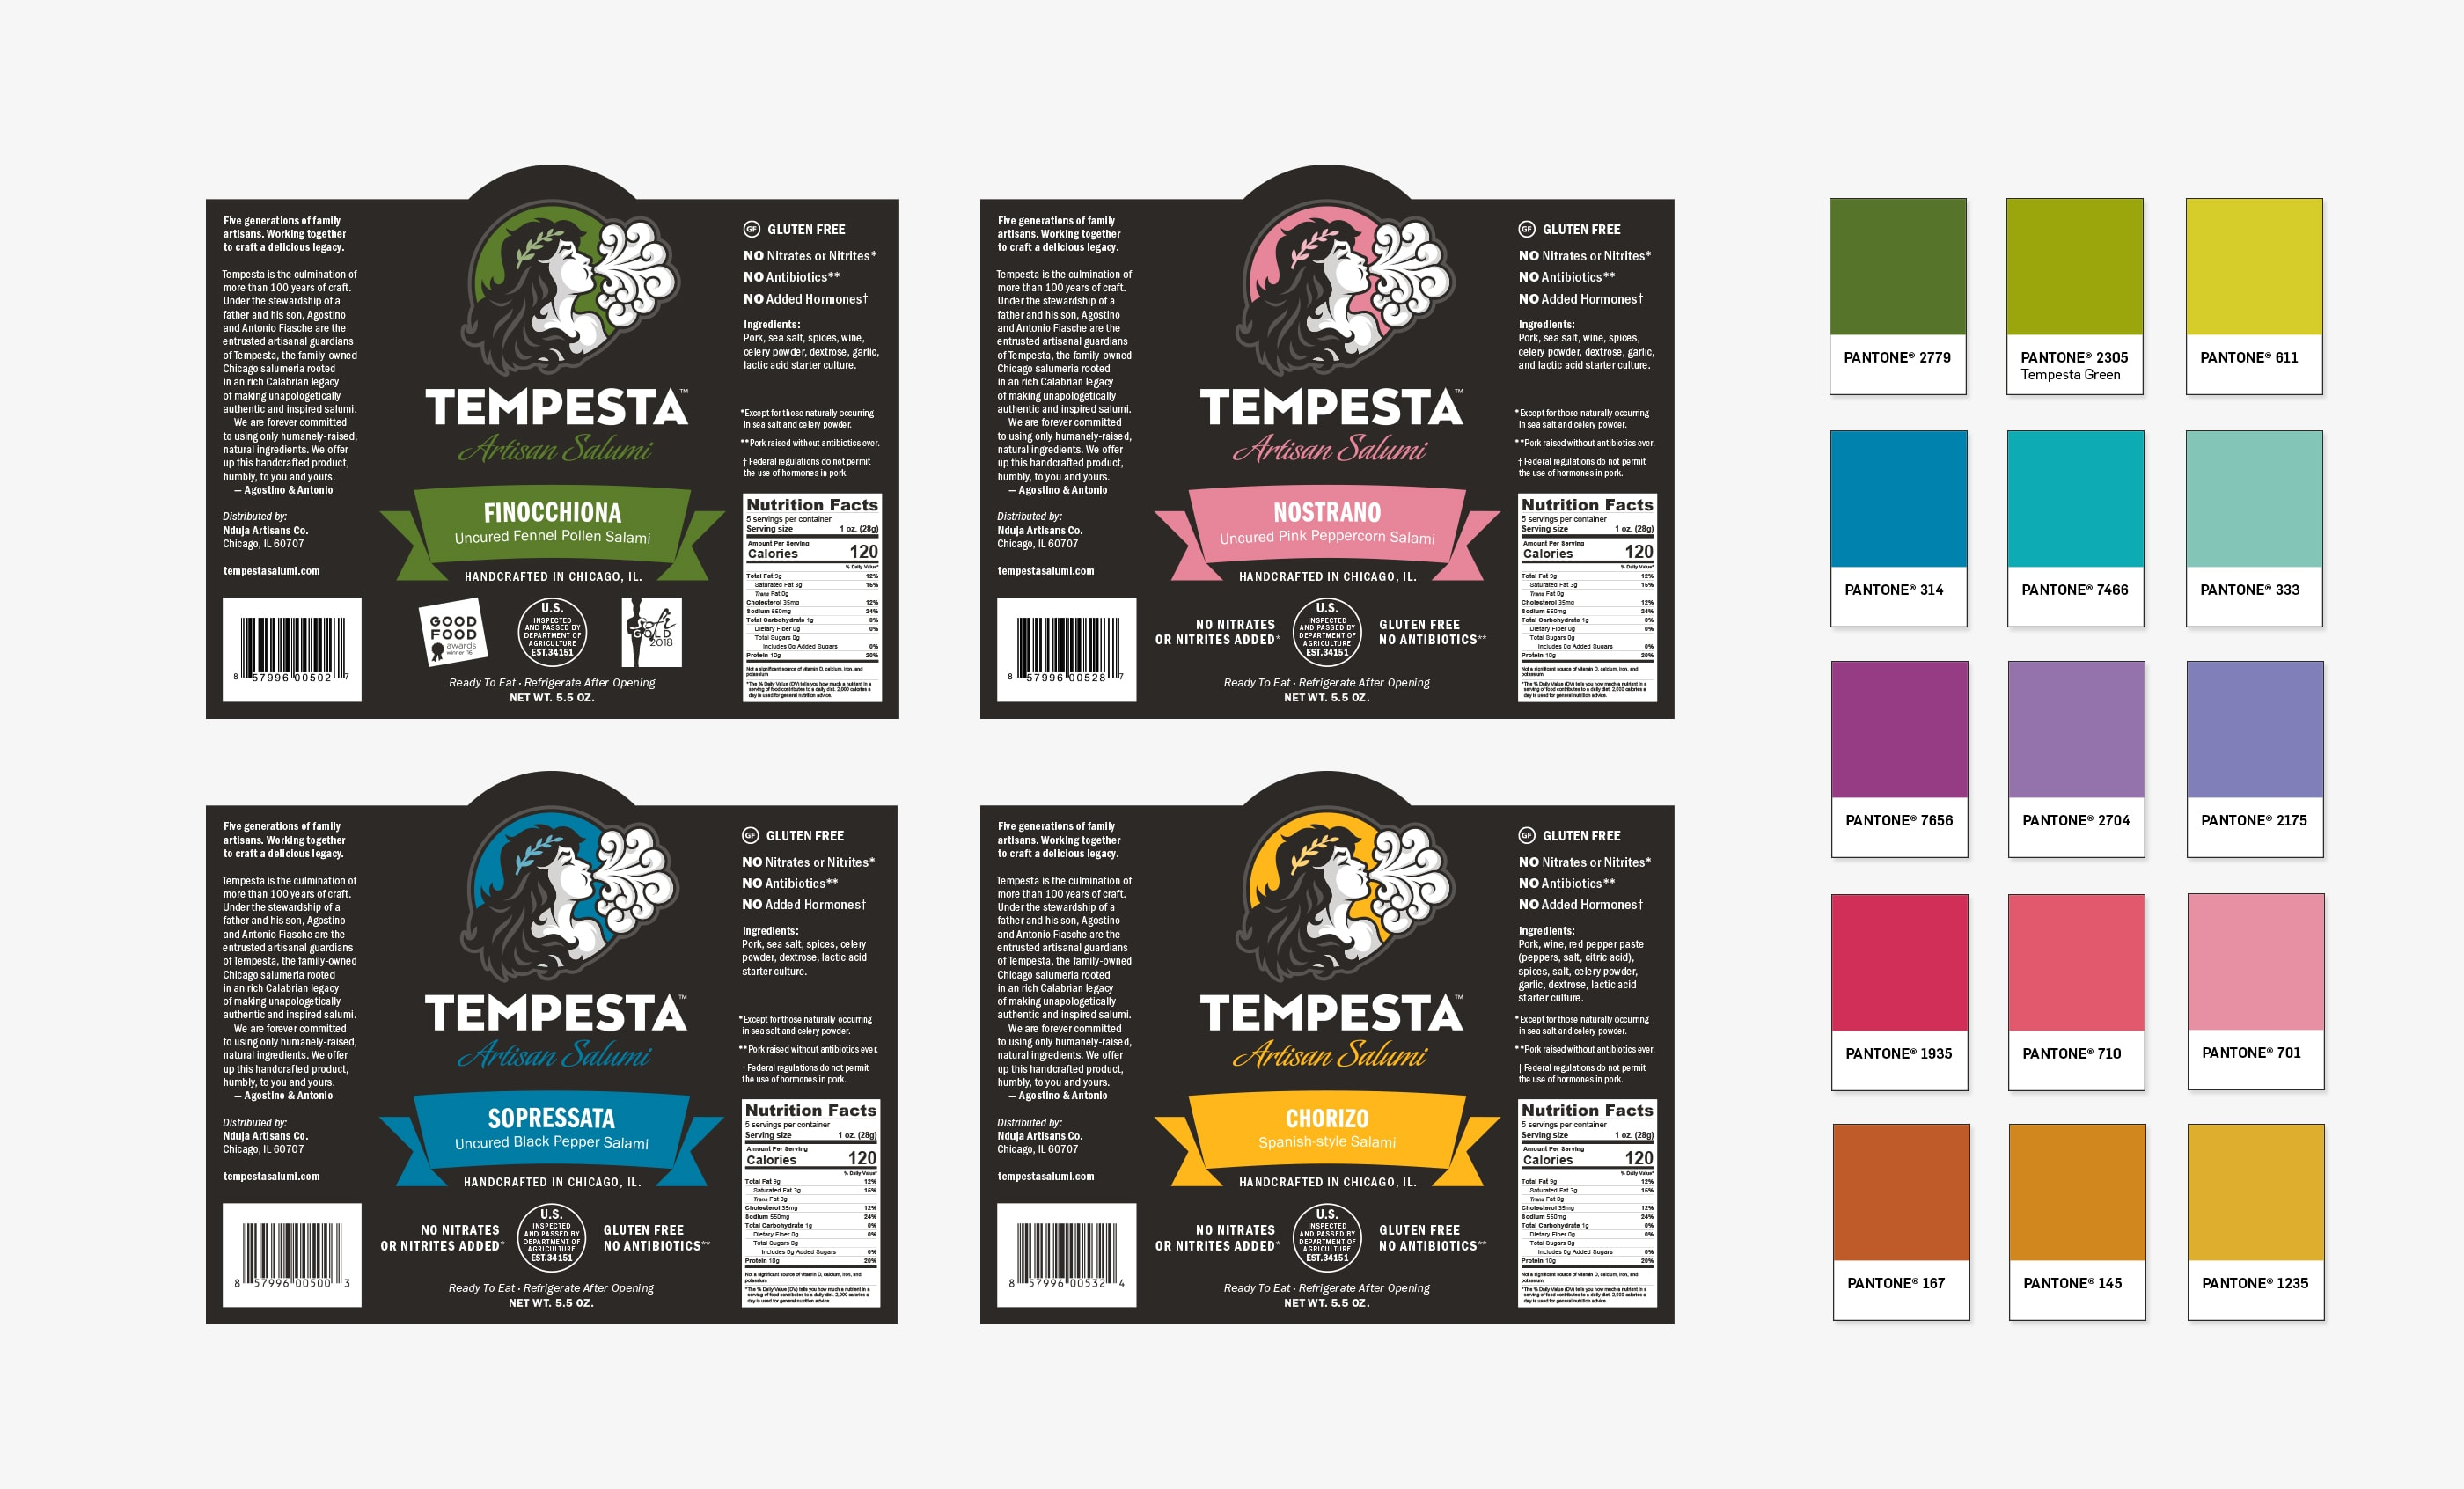 Tempesta Packaging and Color System